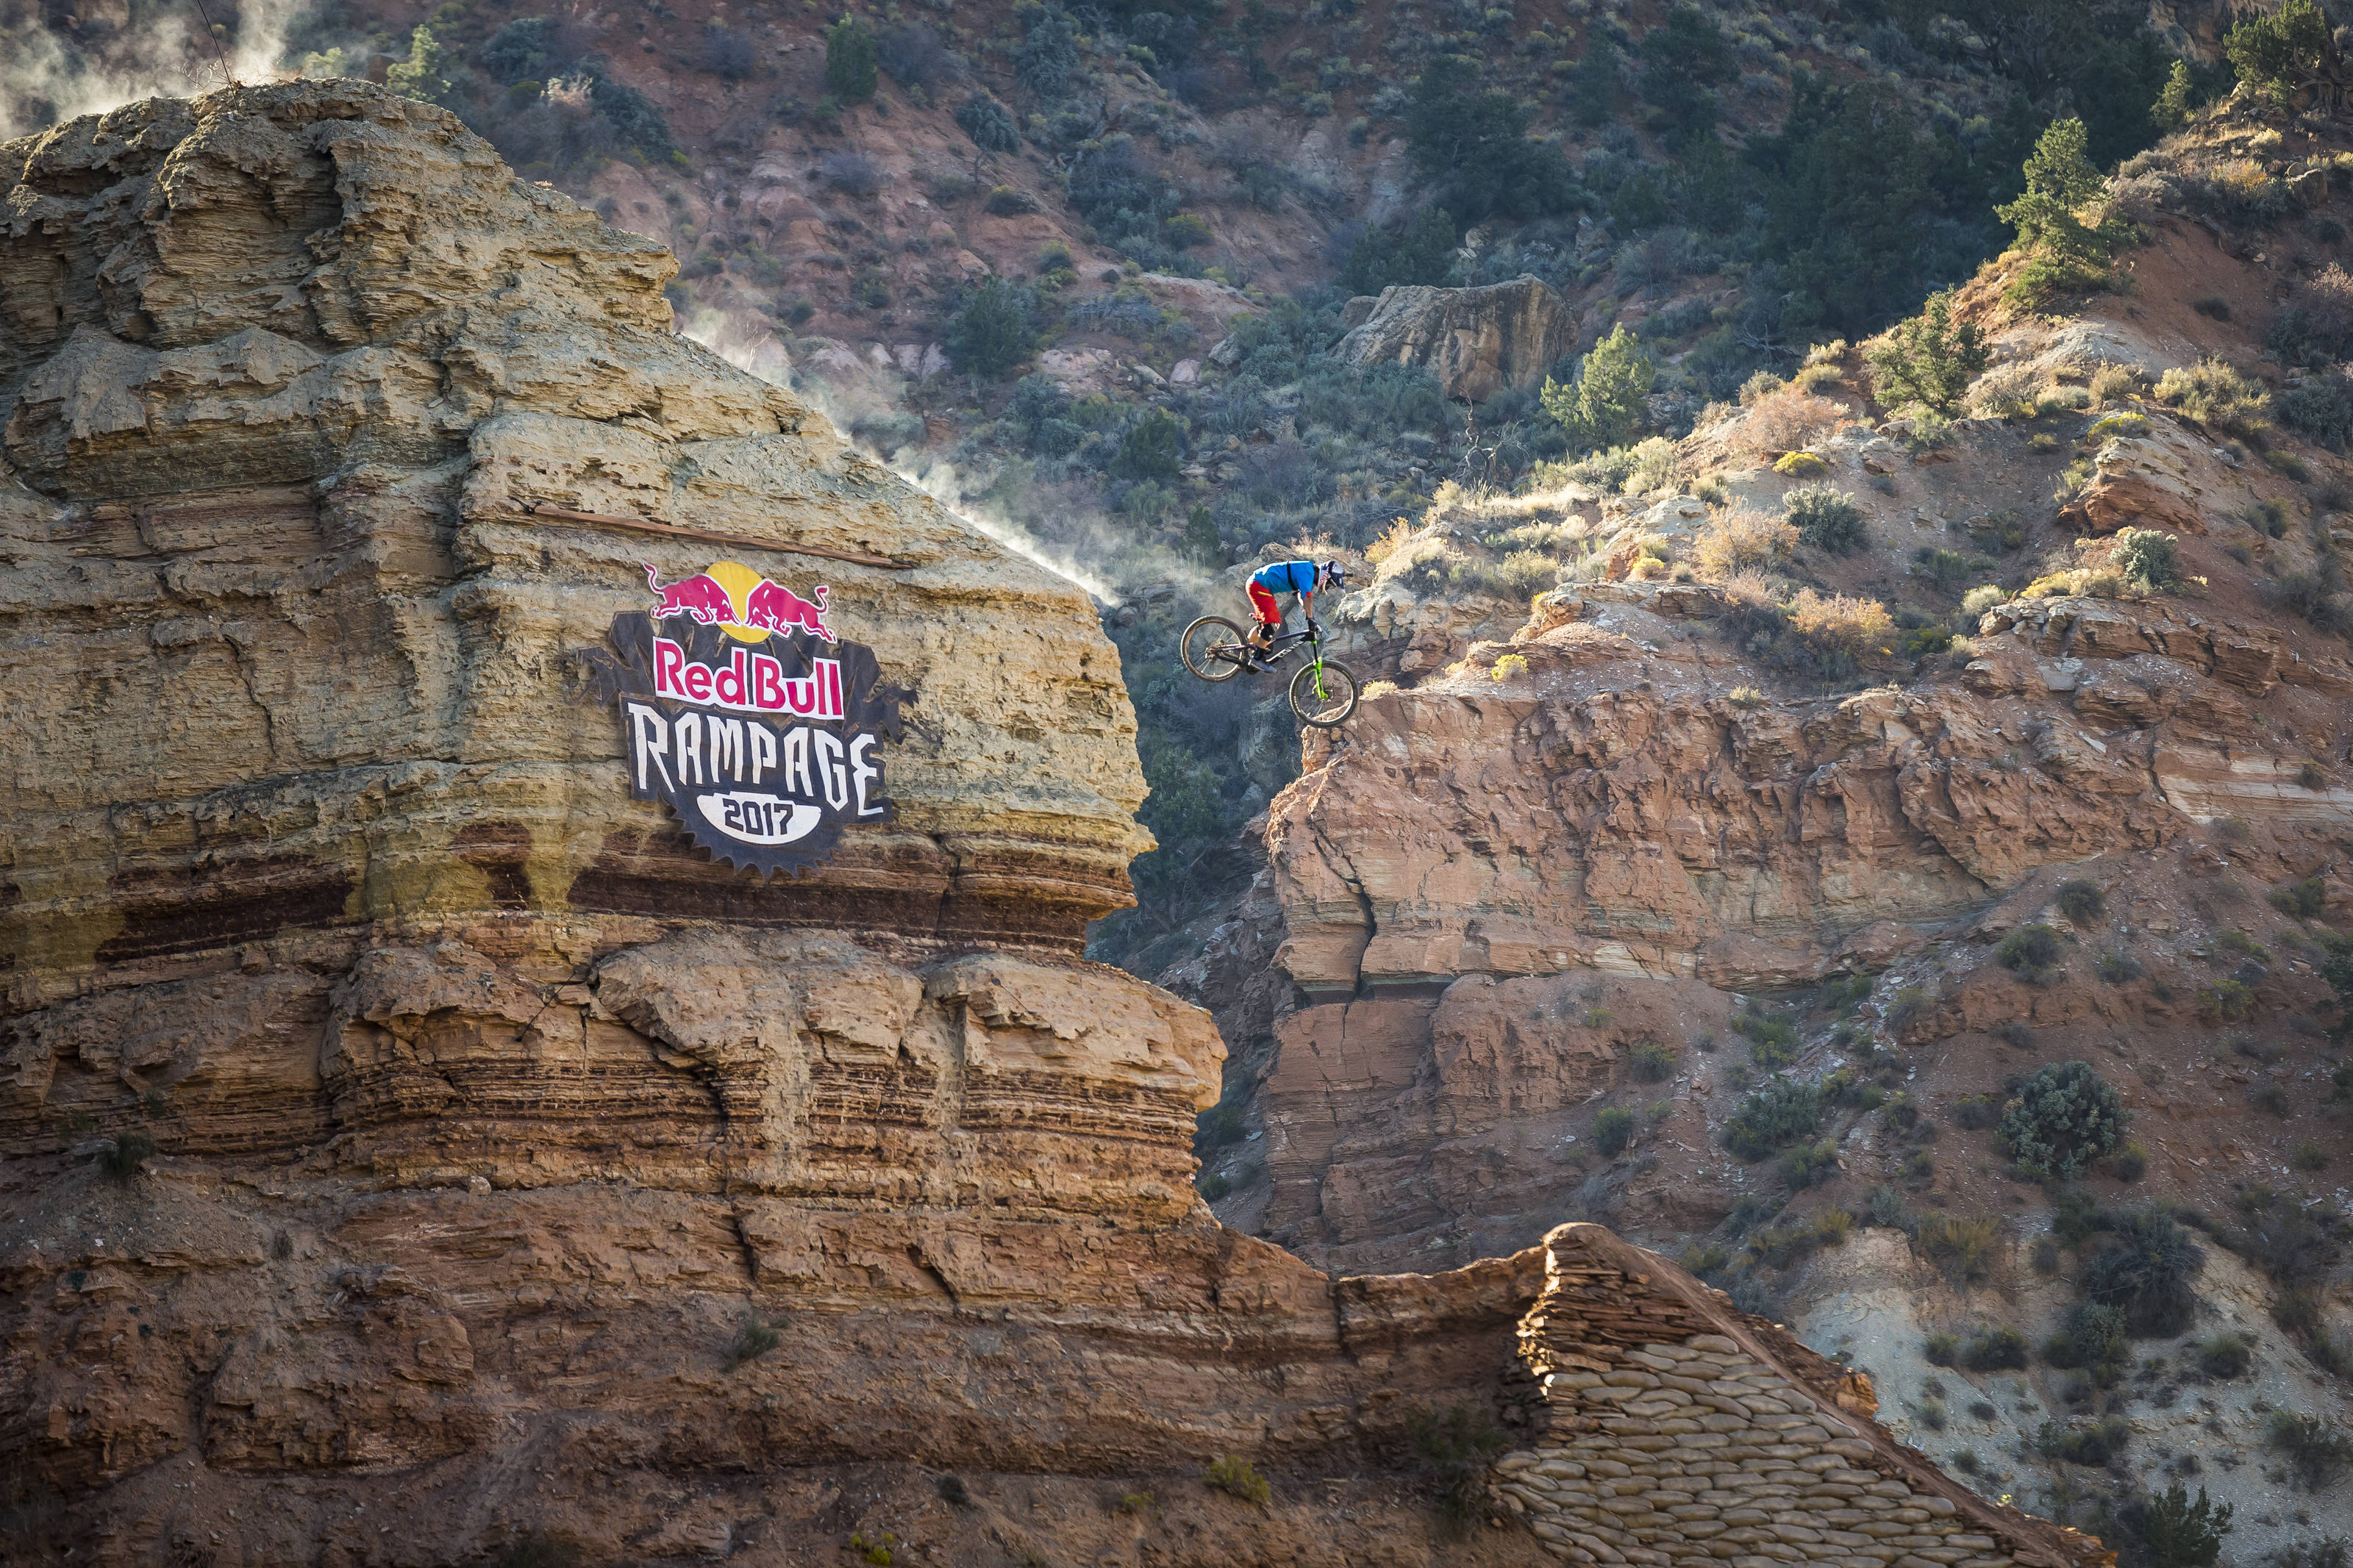 Red Bull Mountain Bike >> Red Bull Rampage 2017 Live Stream starts now - Bikerumor